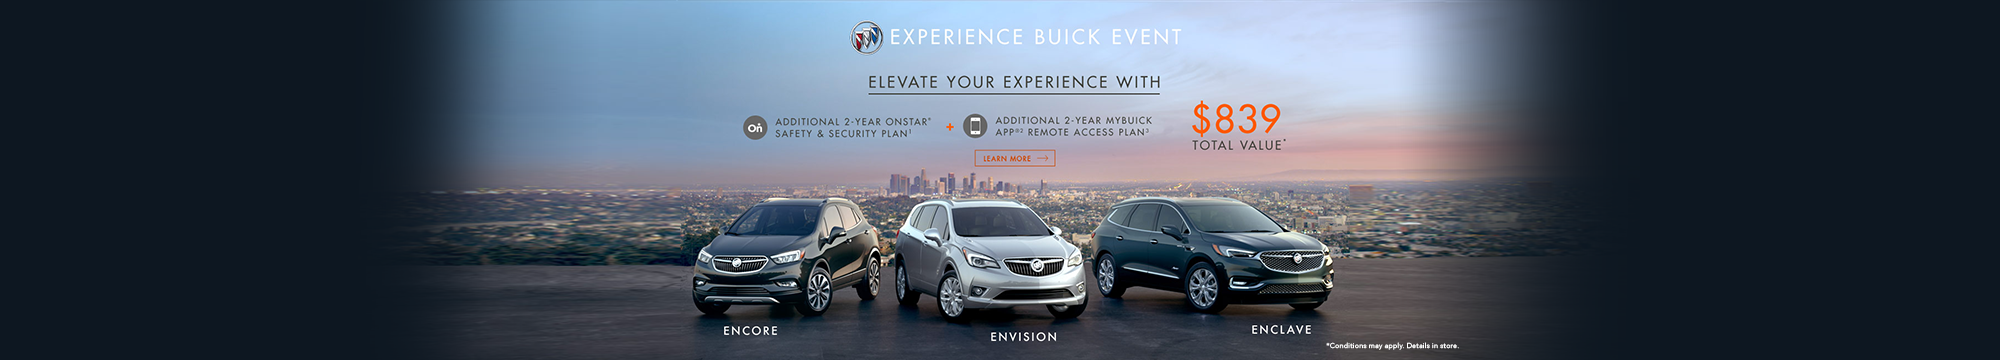 Experience Buick event